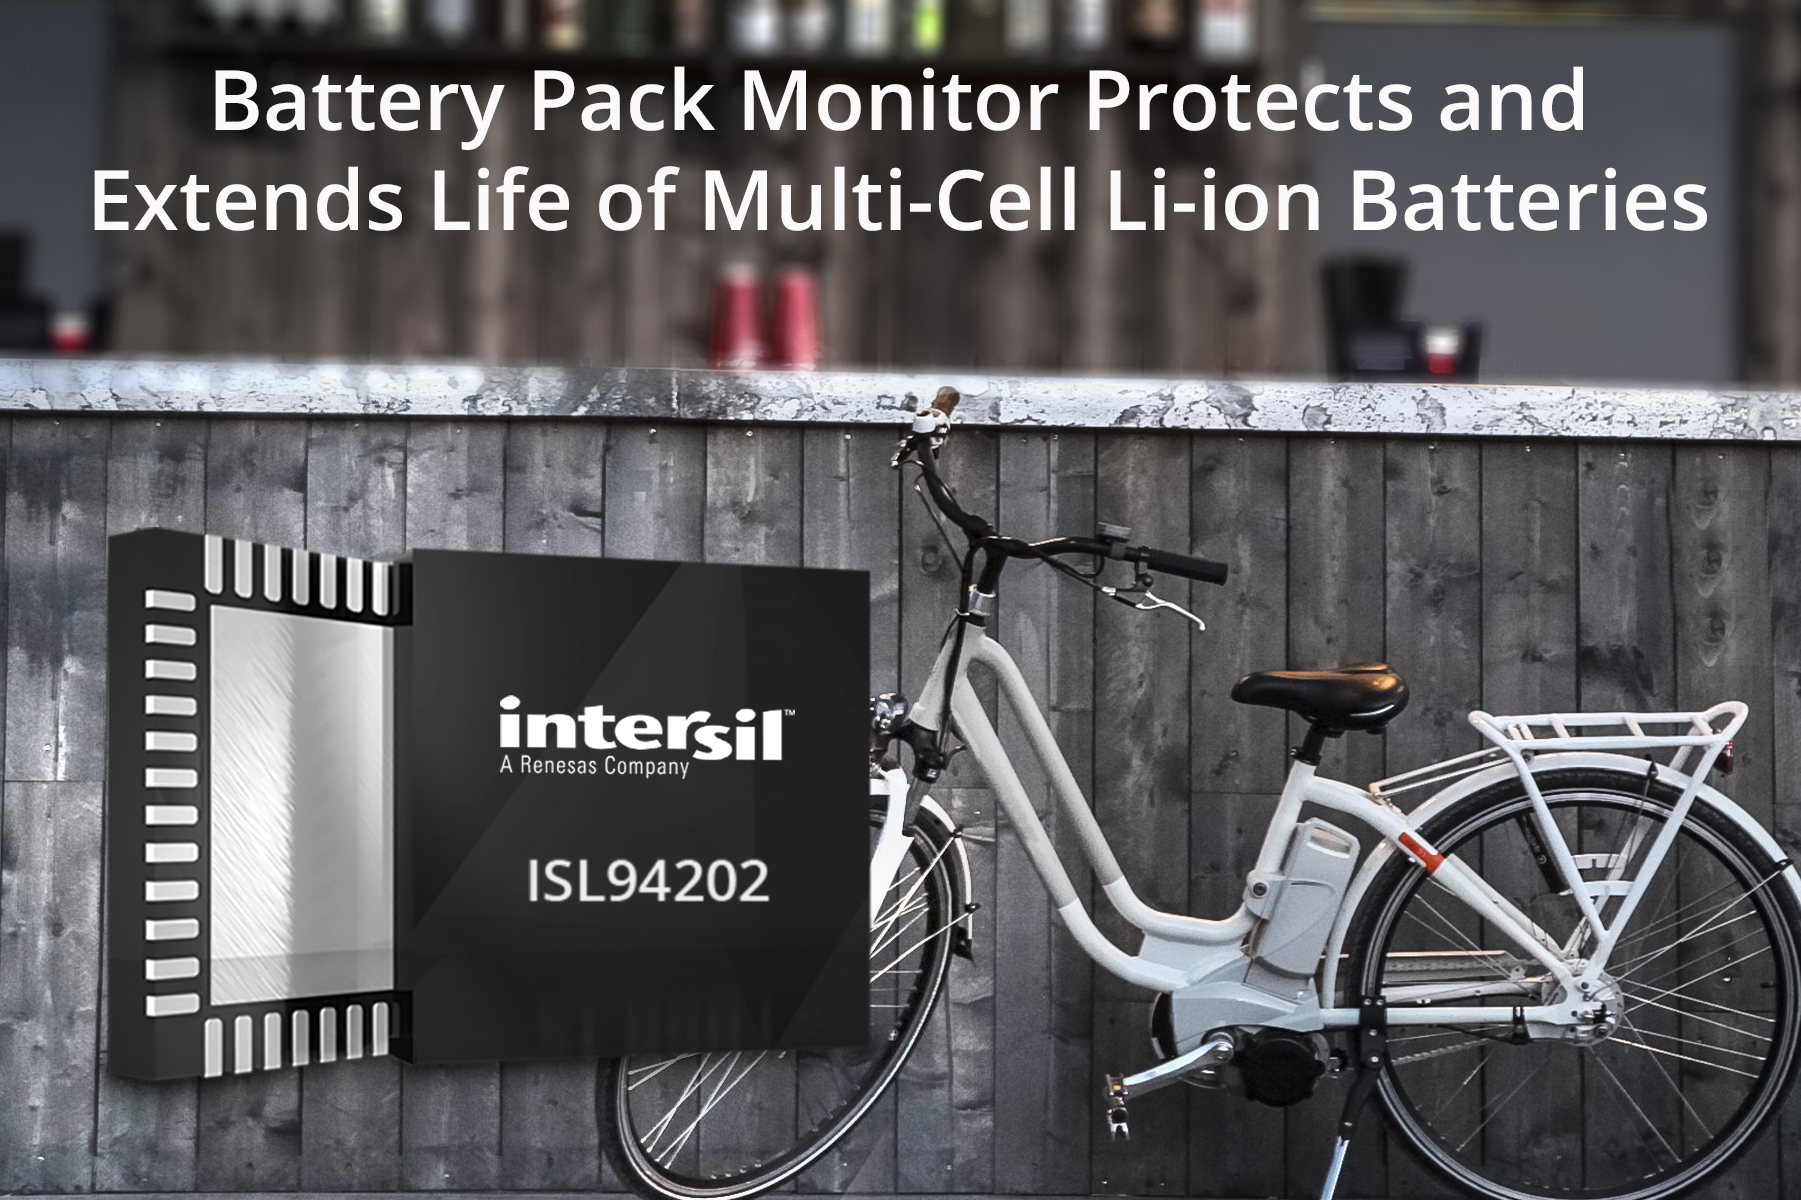 Rutronik adds battery pack from Intersil in its portfolio